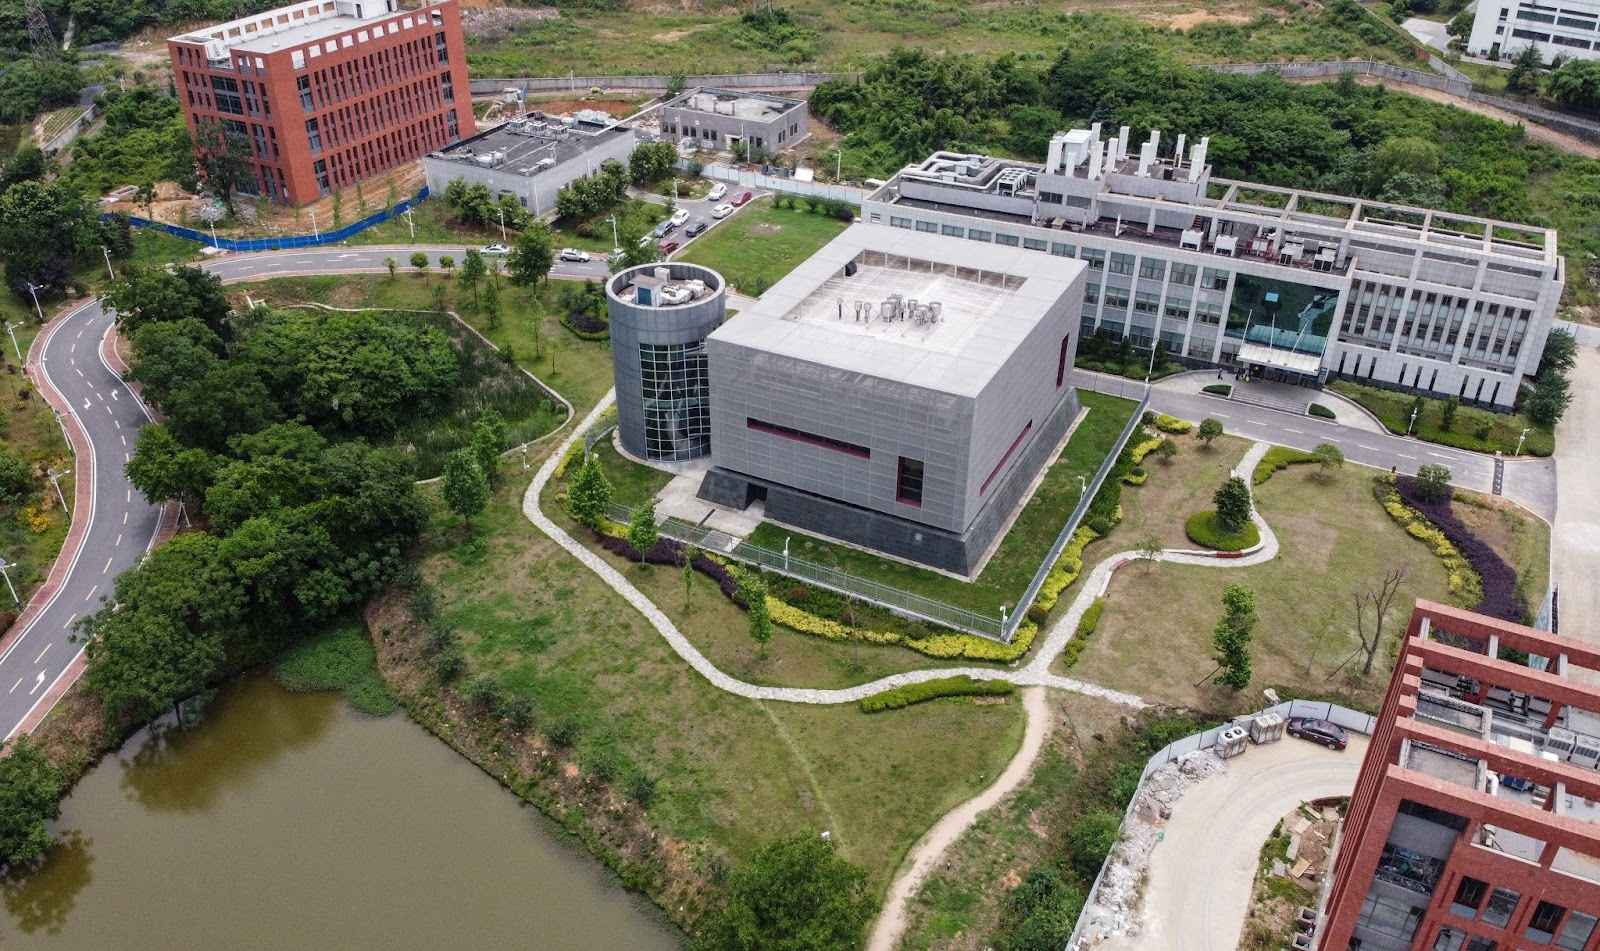 This aerial view shows the P4 laboratory (C) on the campus of the Wuhan Institute of Virology in Wuhan May 13, 2020. The world is becoming more clear about the origin of SARS-CoV-2 being none other than the Chinese Communist Party's only Biosecurity Level IV laboratory.